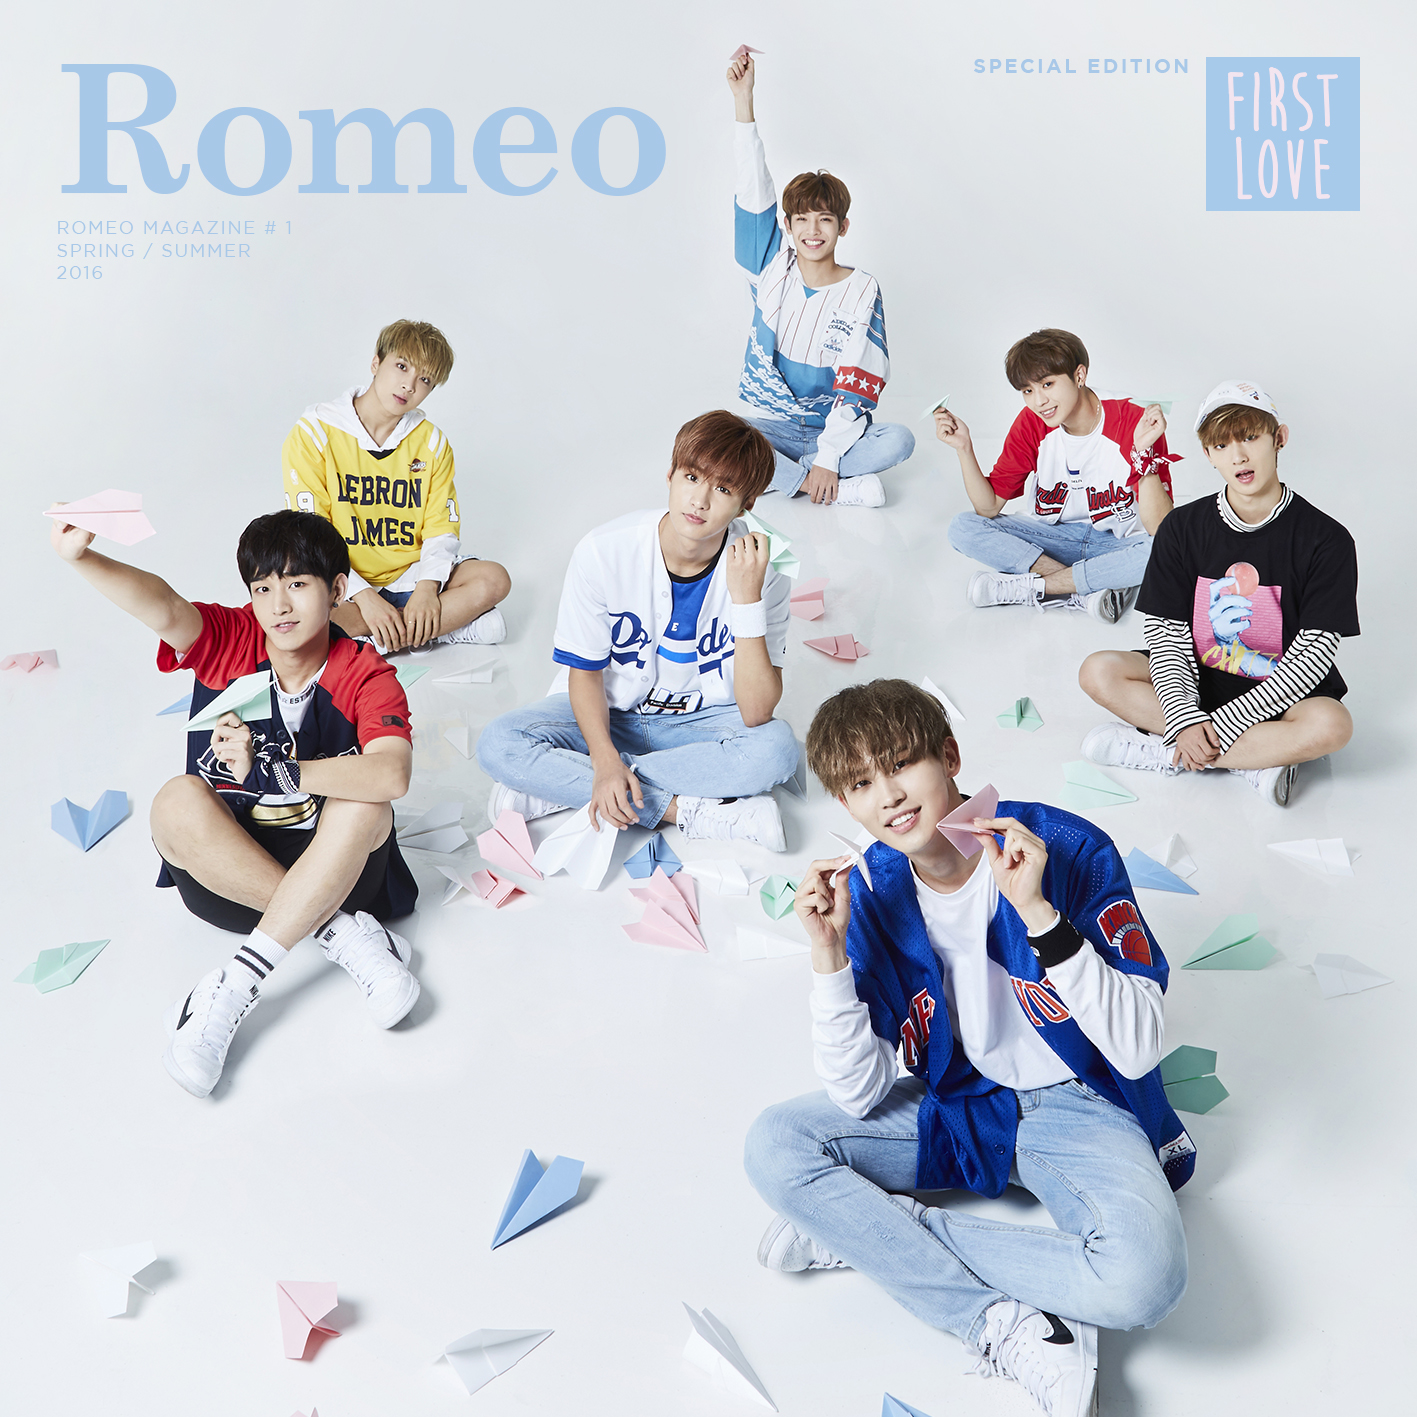 [ROMEO] Special Edition `First Love'